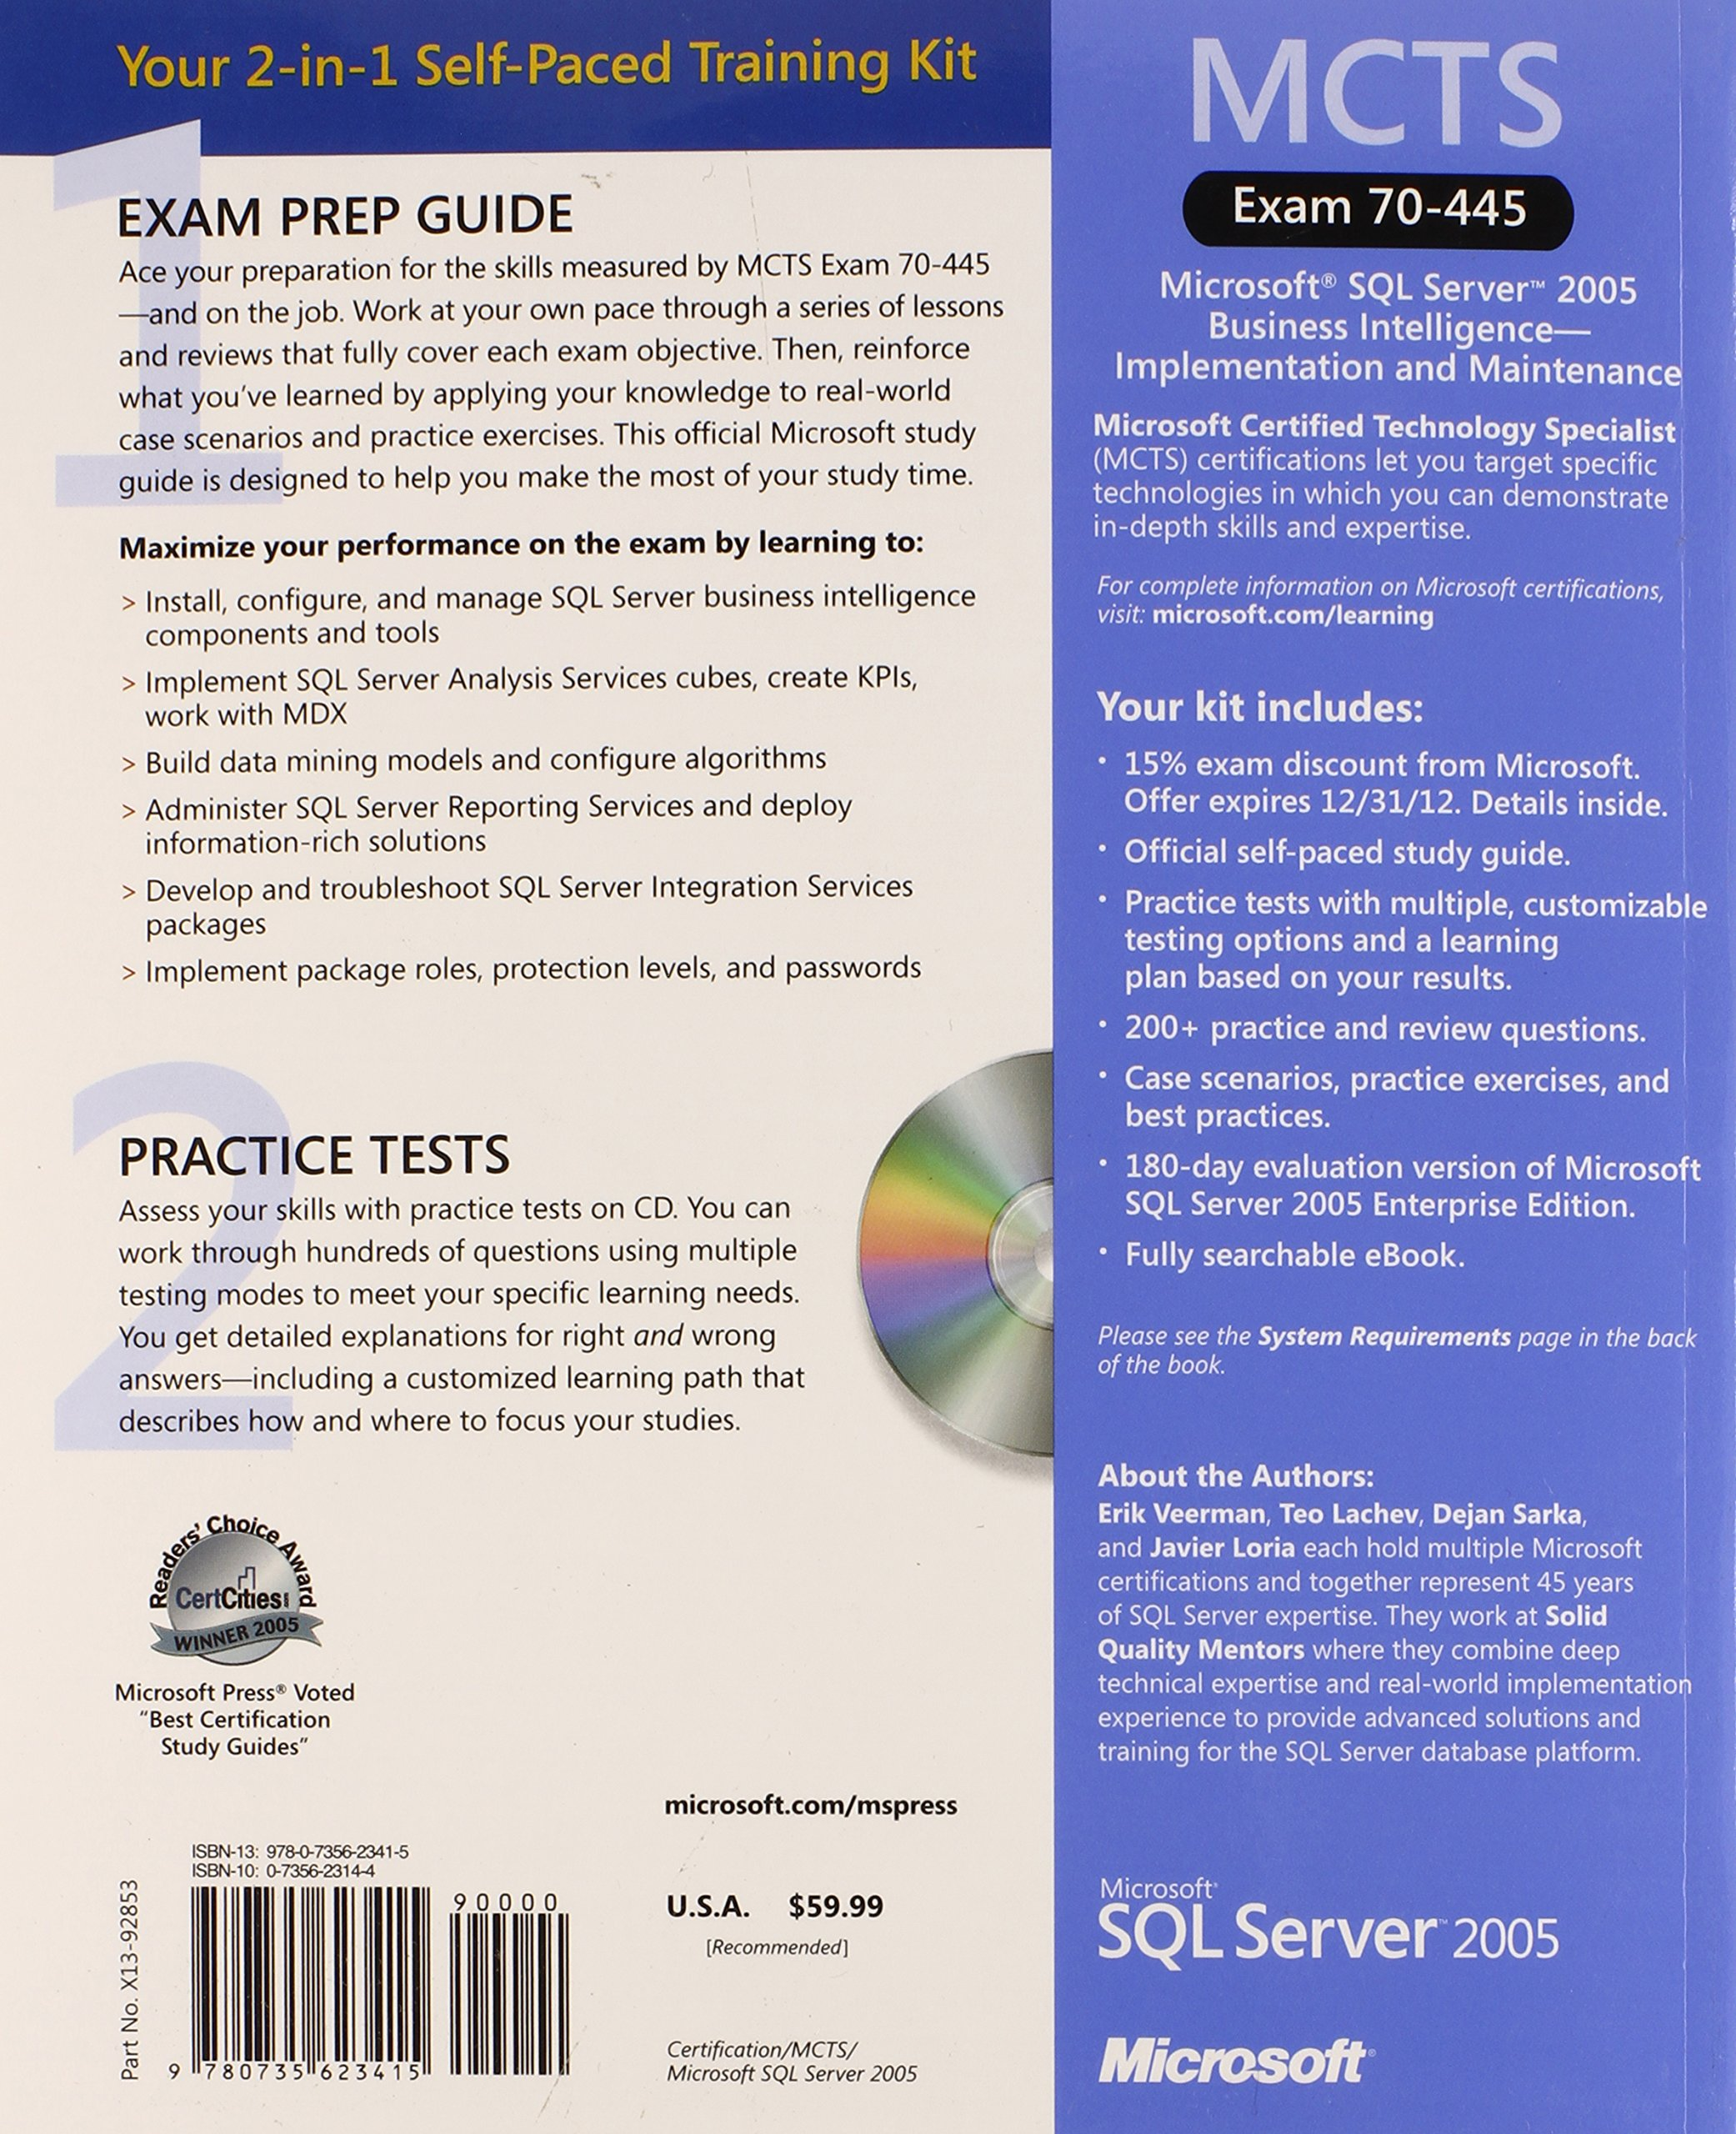 Microsoft Certification Mcts Choice Image Creative Certificate